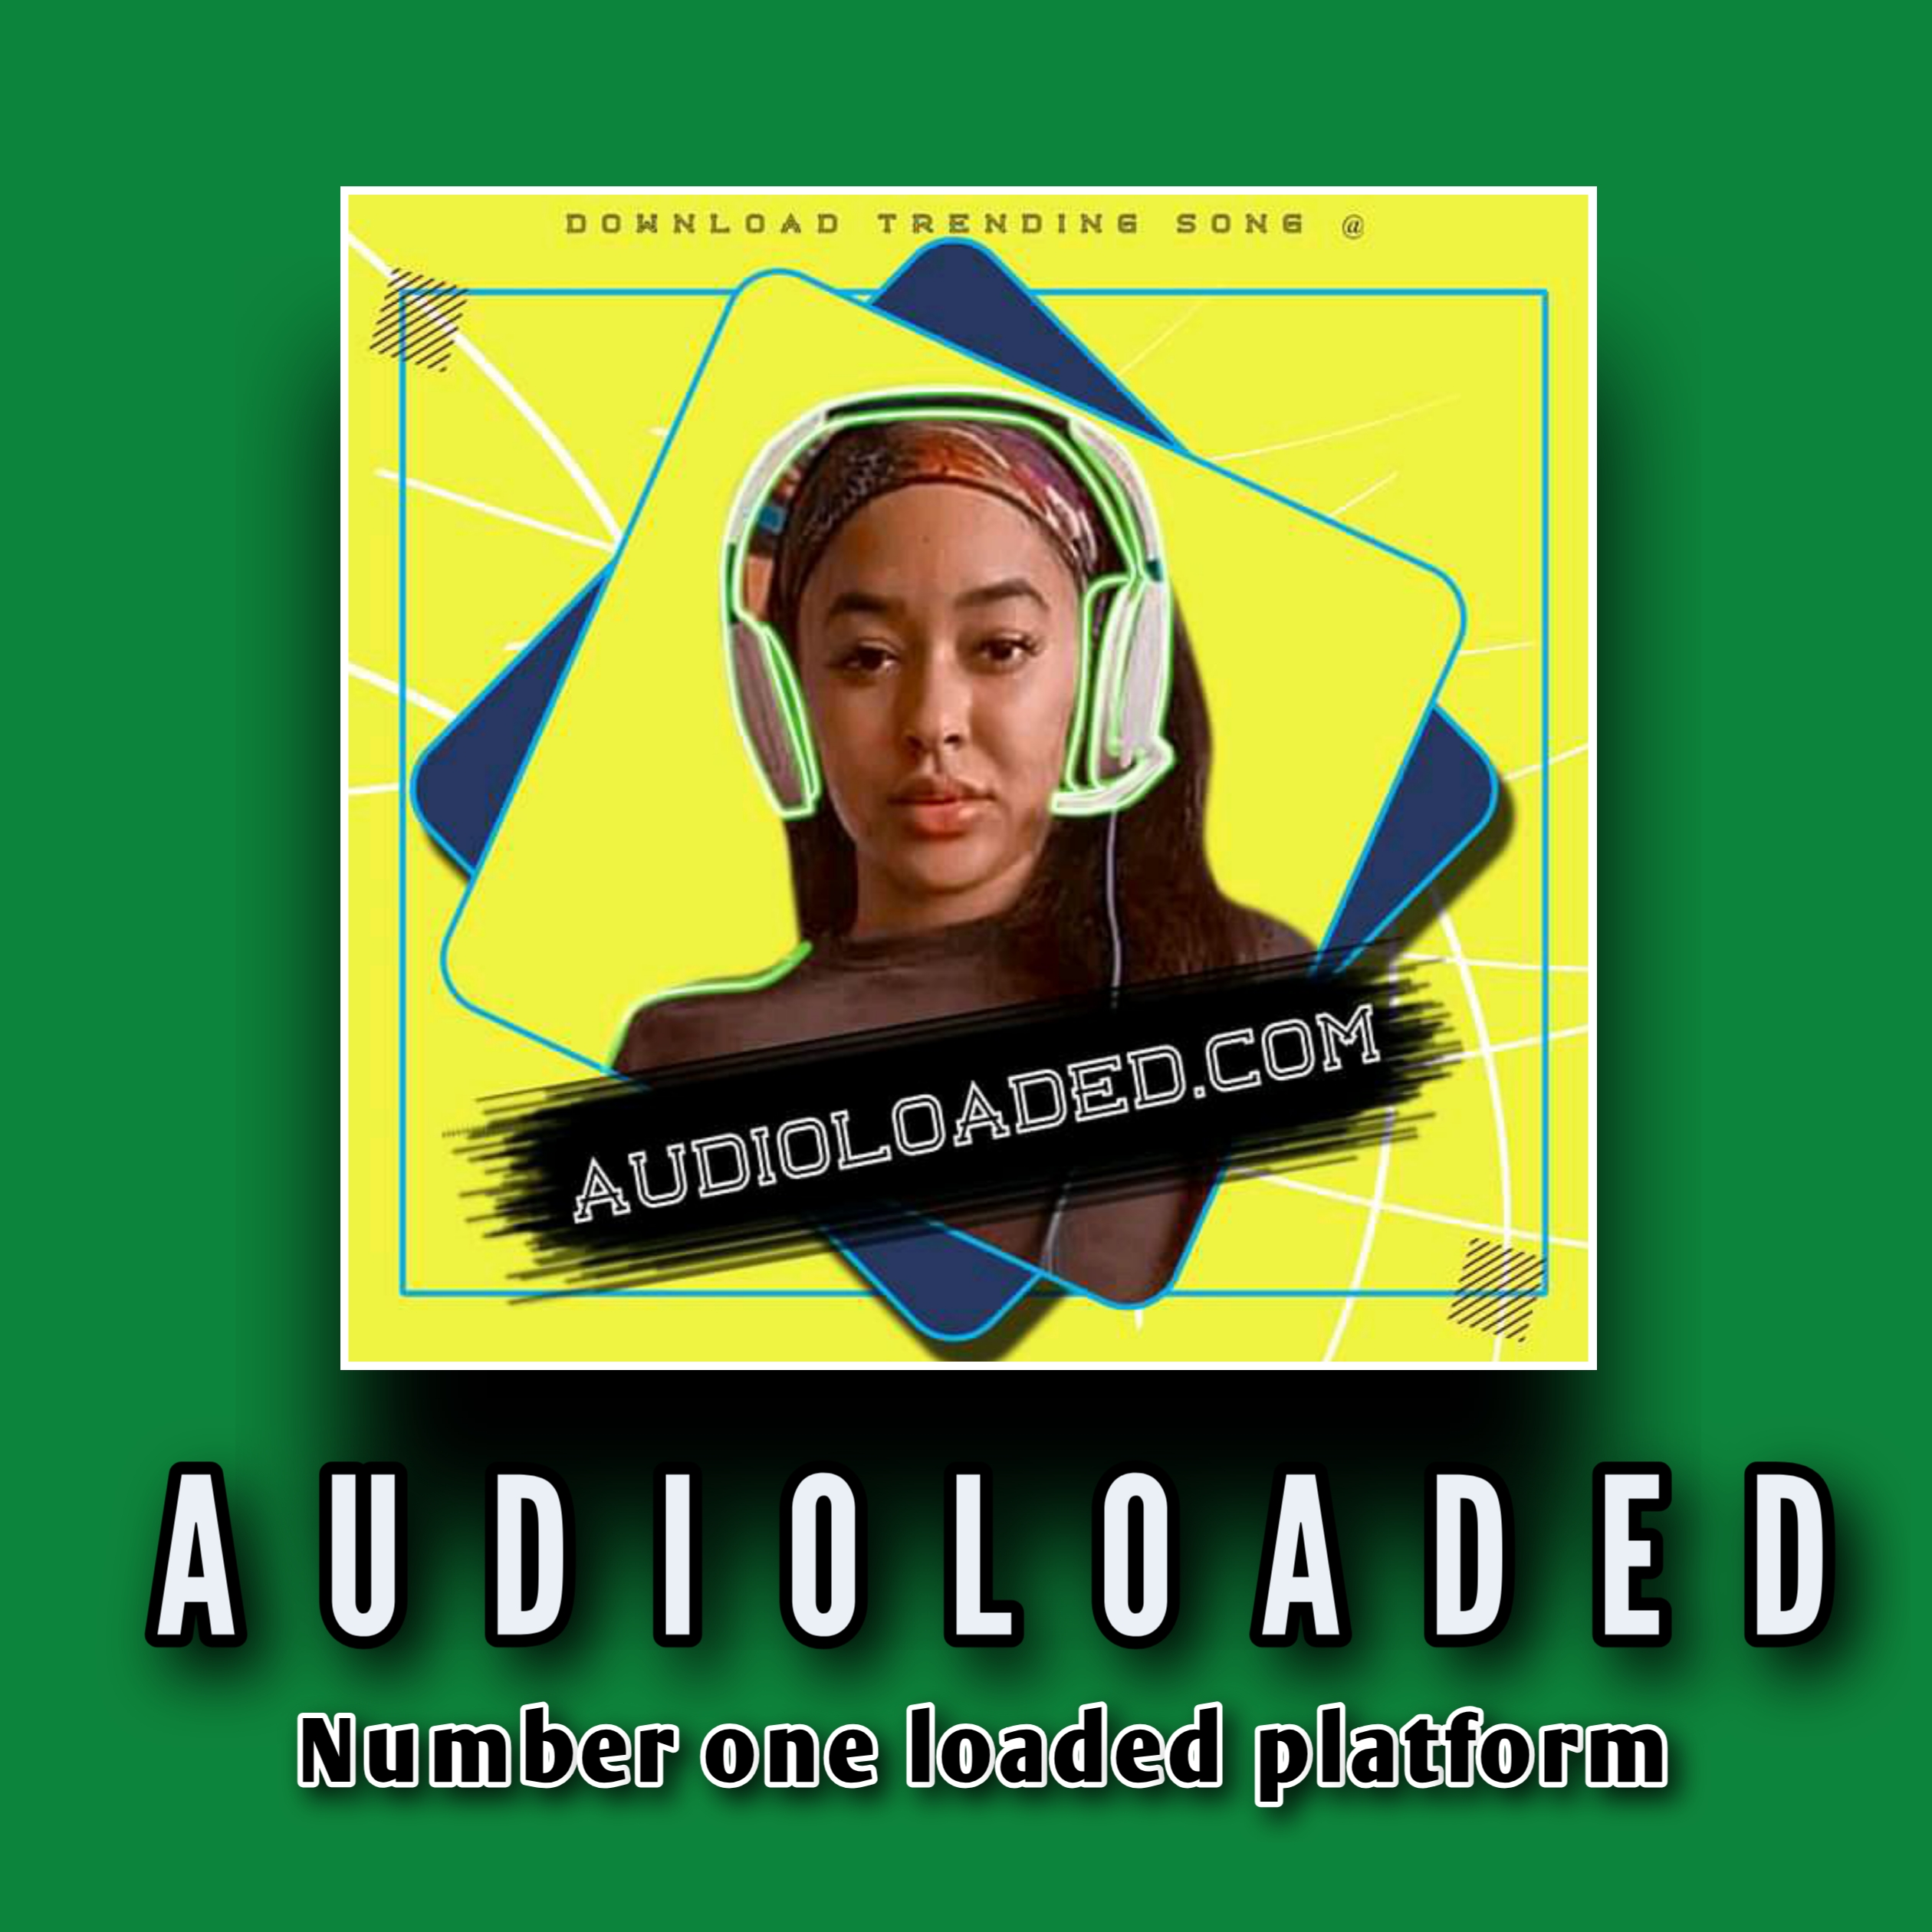 AUDIOLOADED